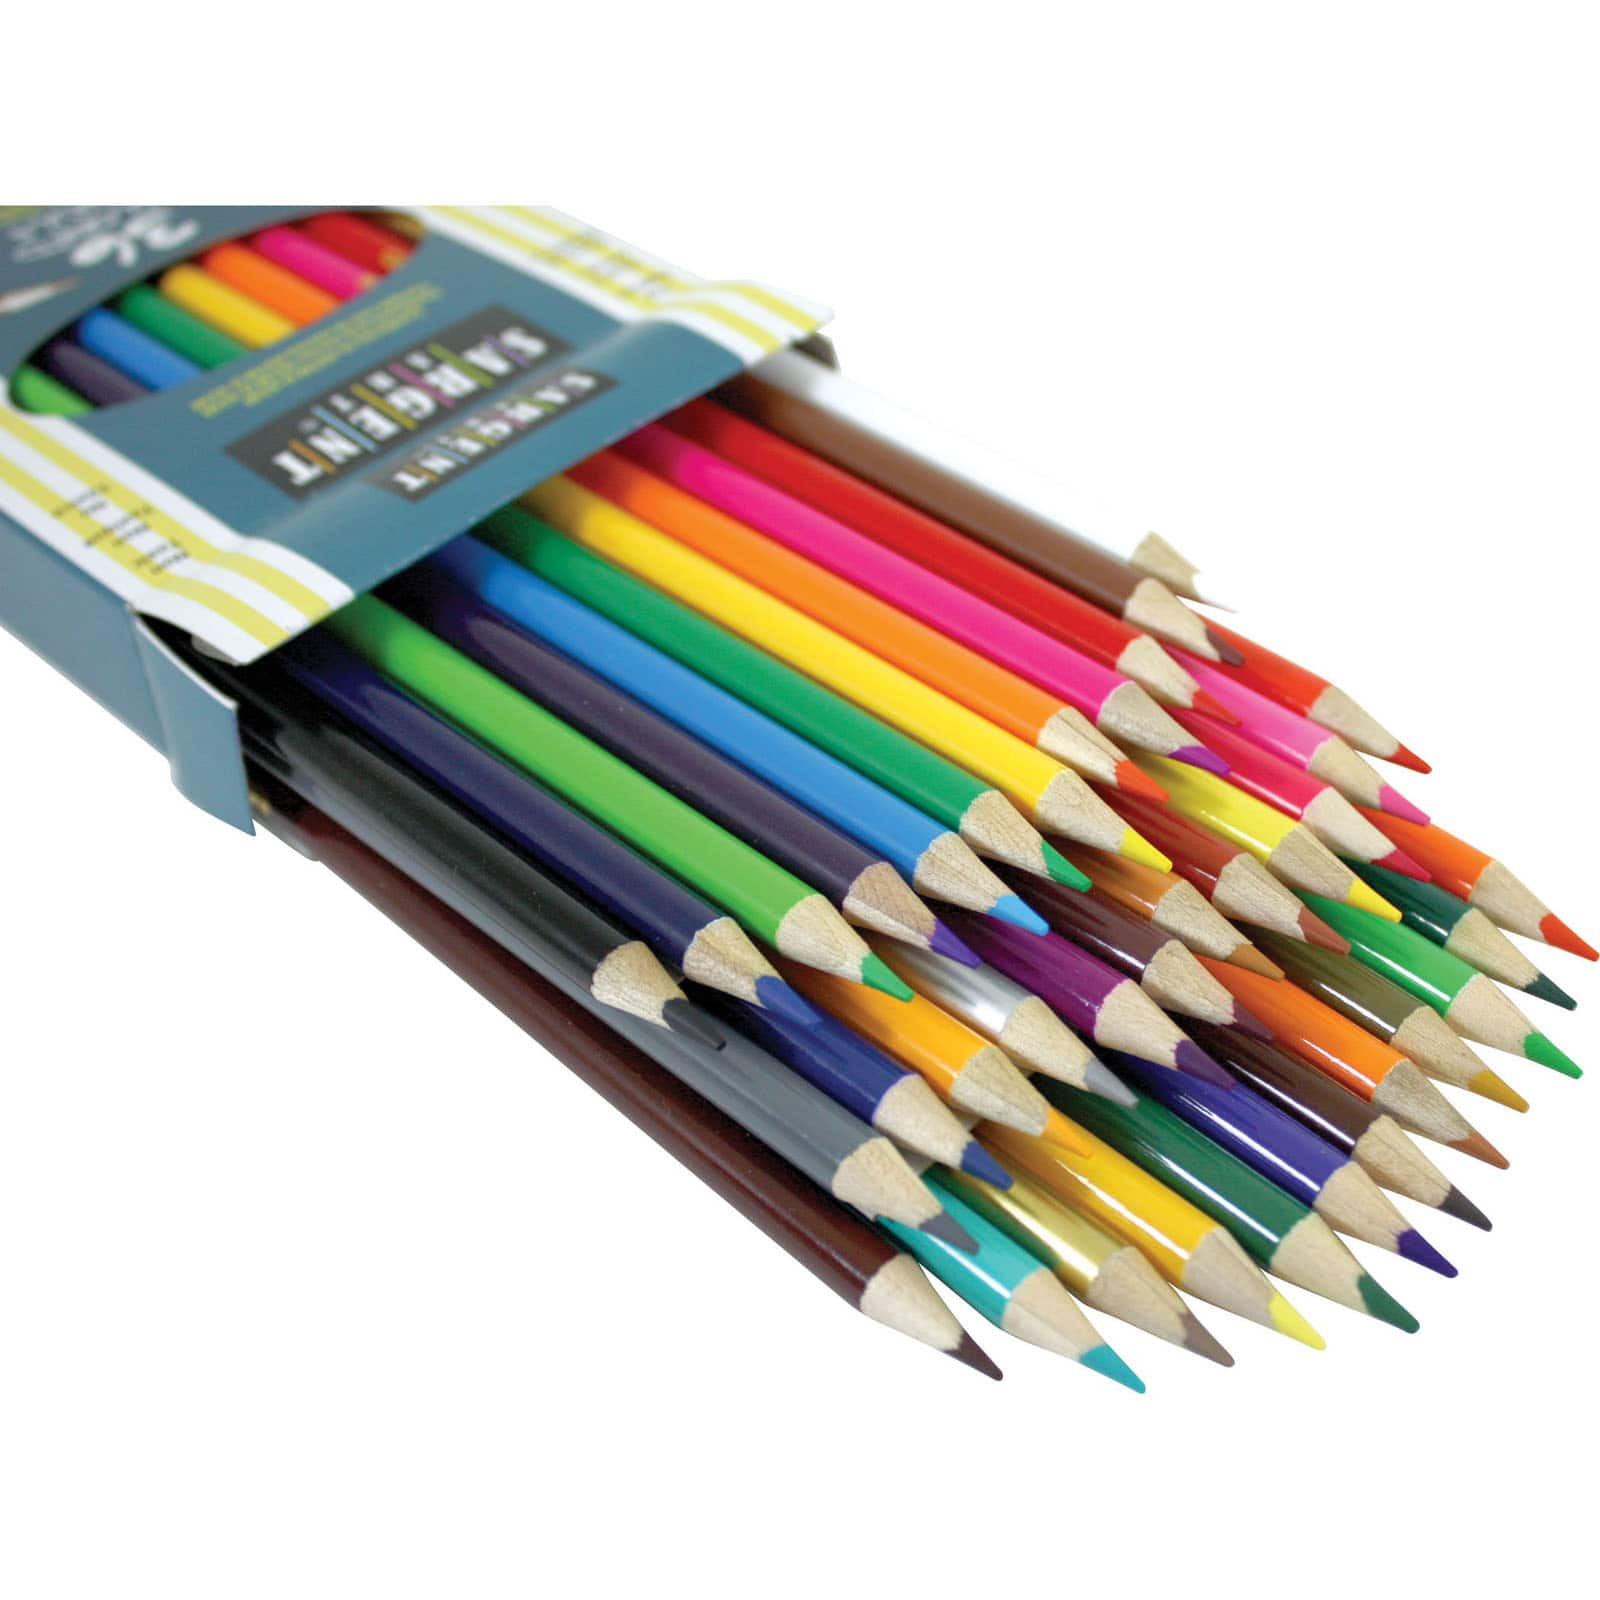 Sargent Art Colored Pencil Drawing Set 20 count